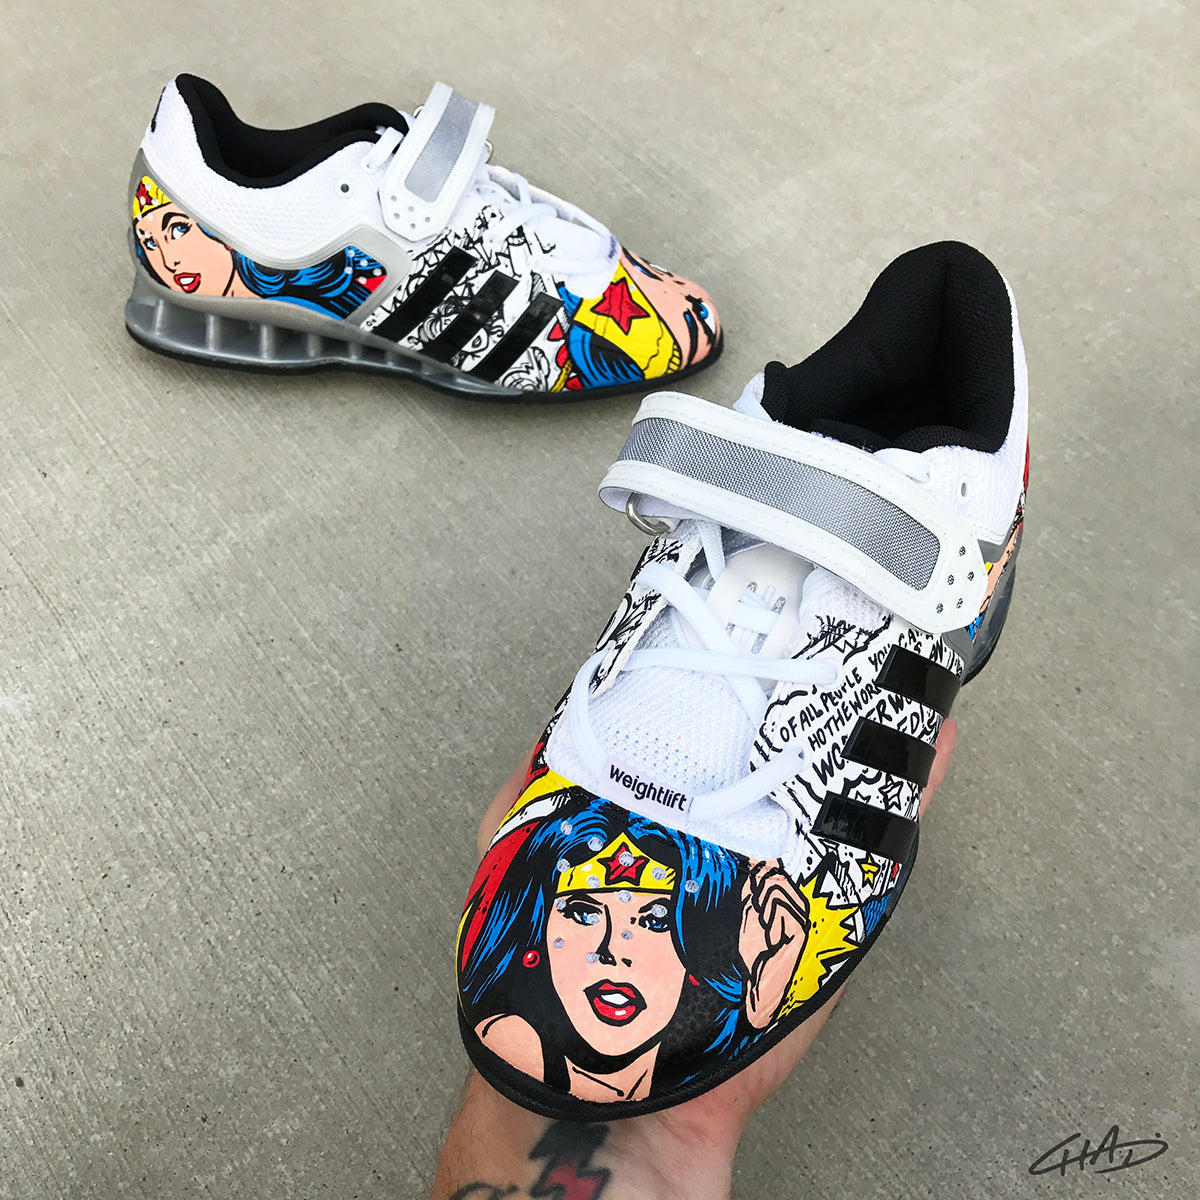 Wonder Woman Custom Hand Painted Adidas Adipower - Olympic Weightlifting Crossfit shoes